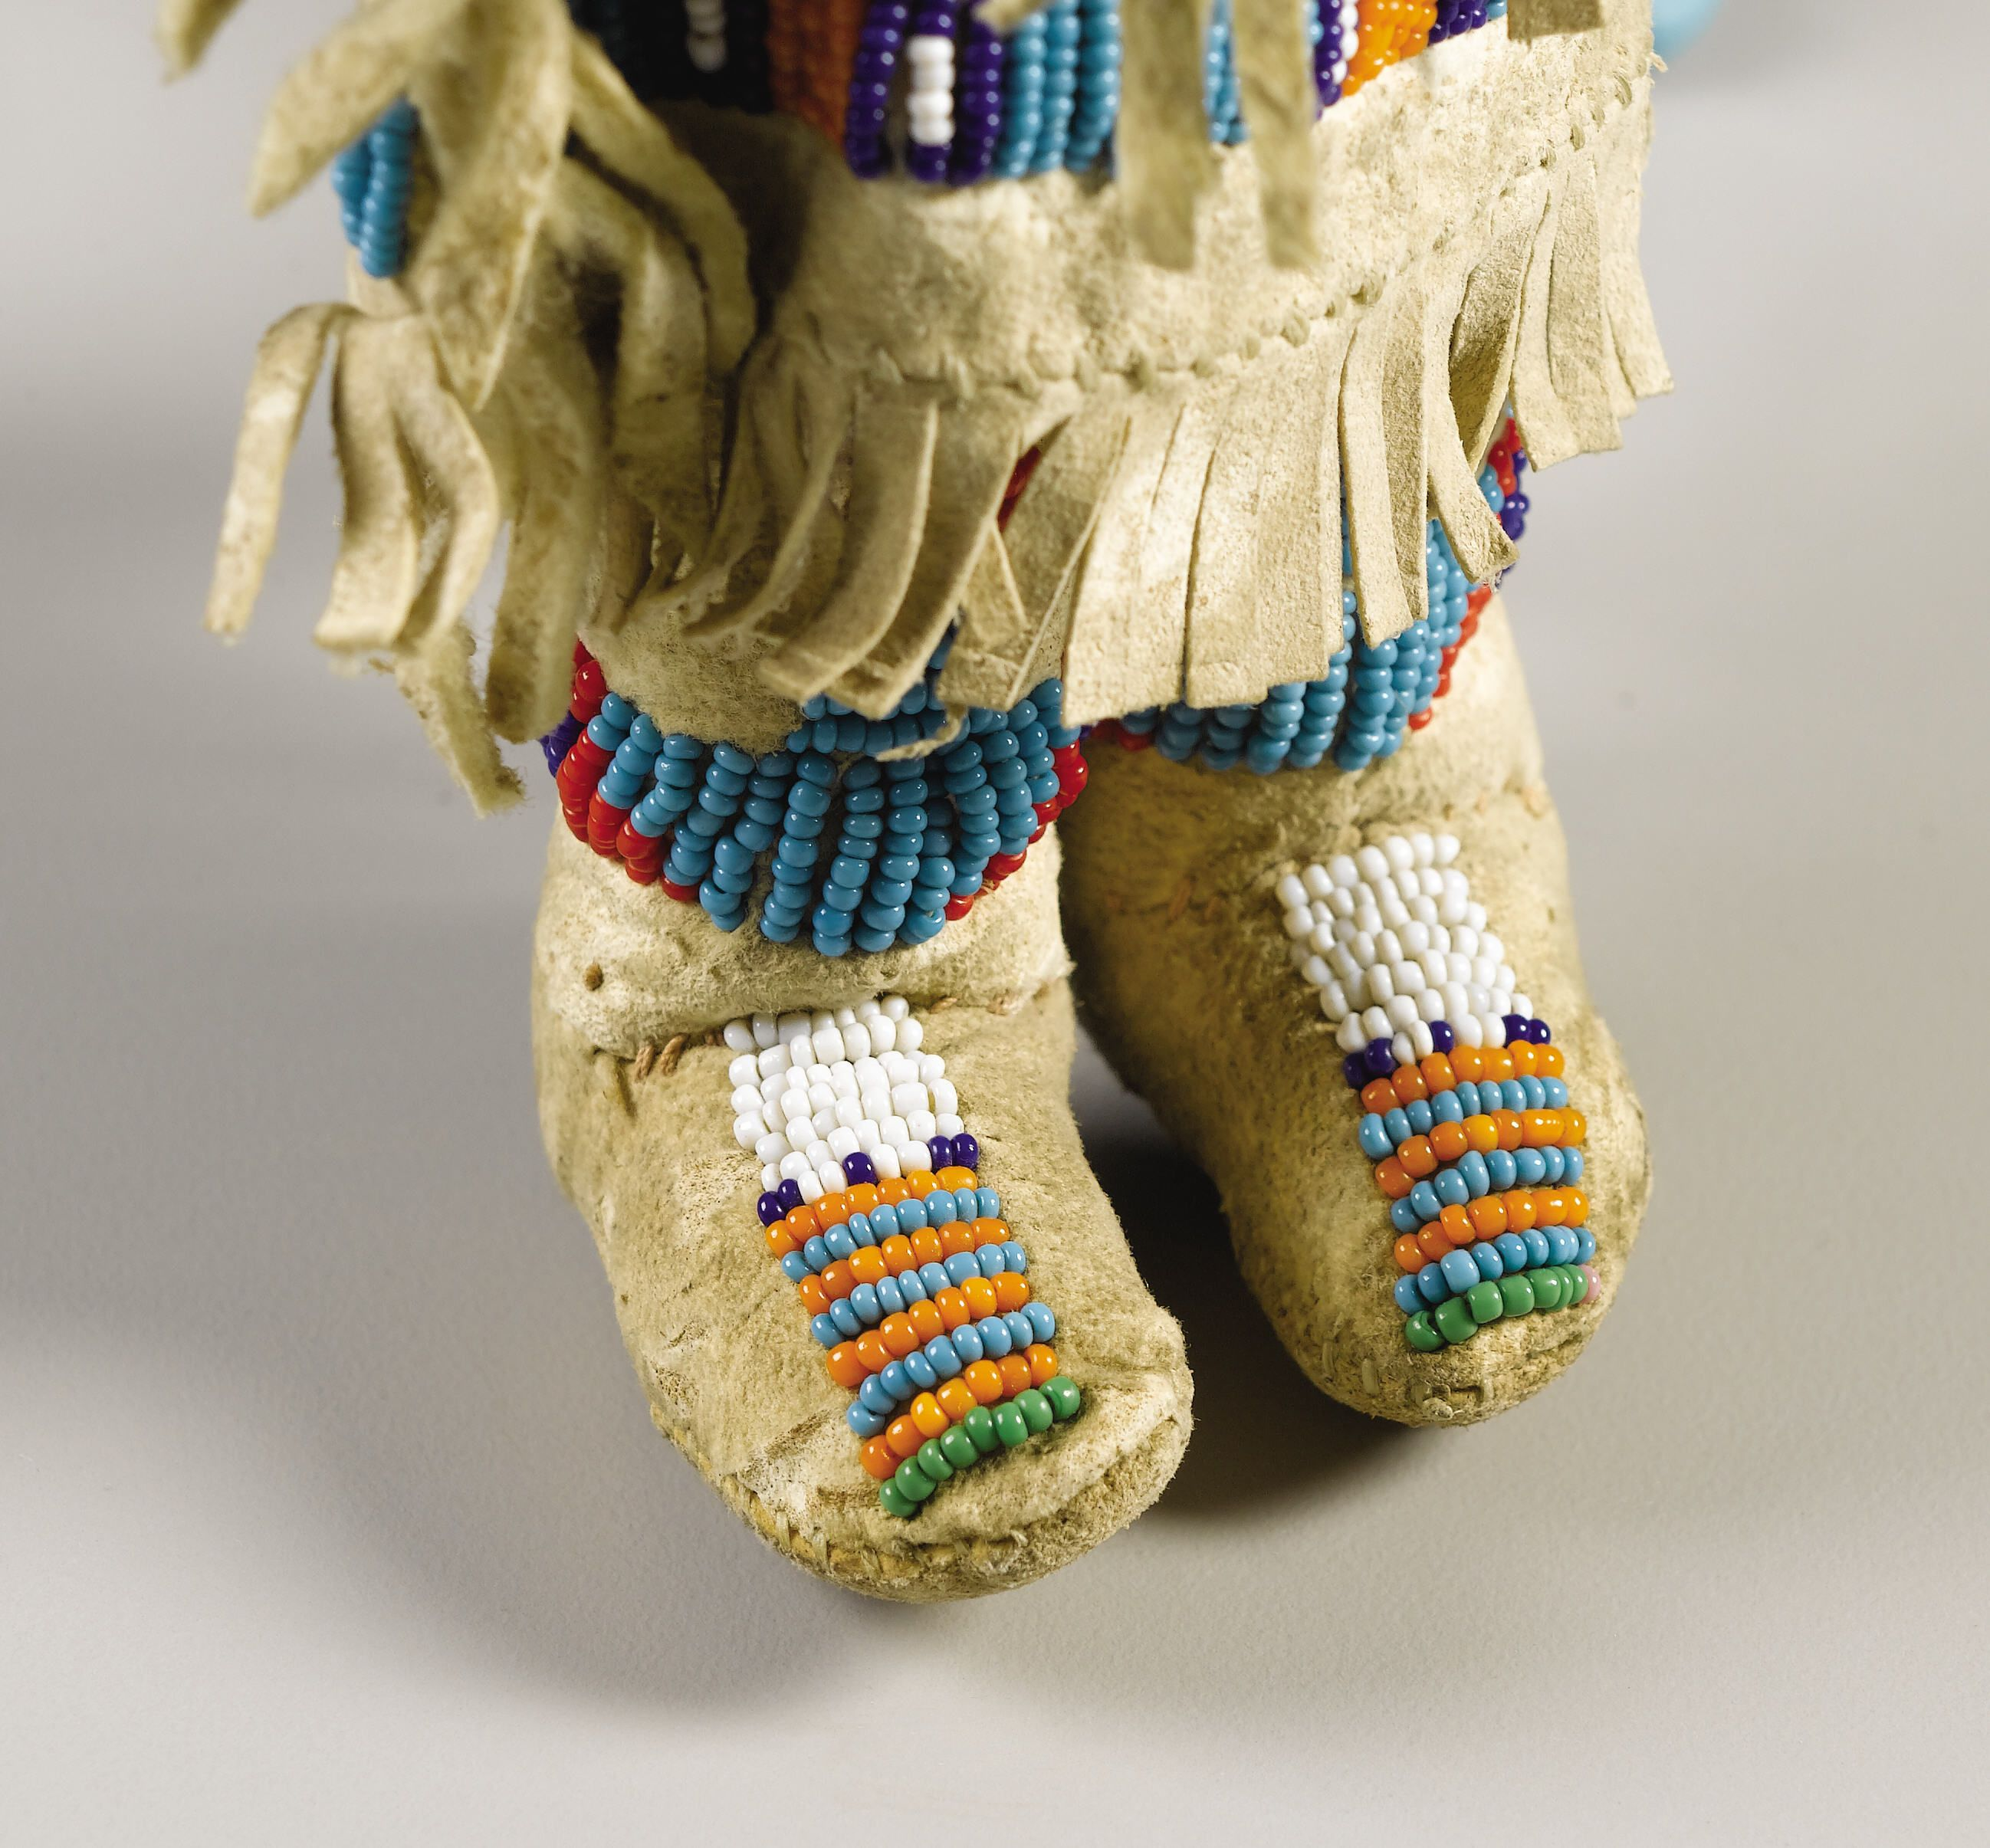 A SIOUX BEADED HIDE FEMALE DOLL. . c. 1900. American